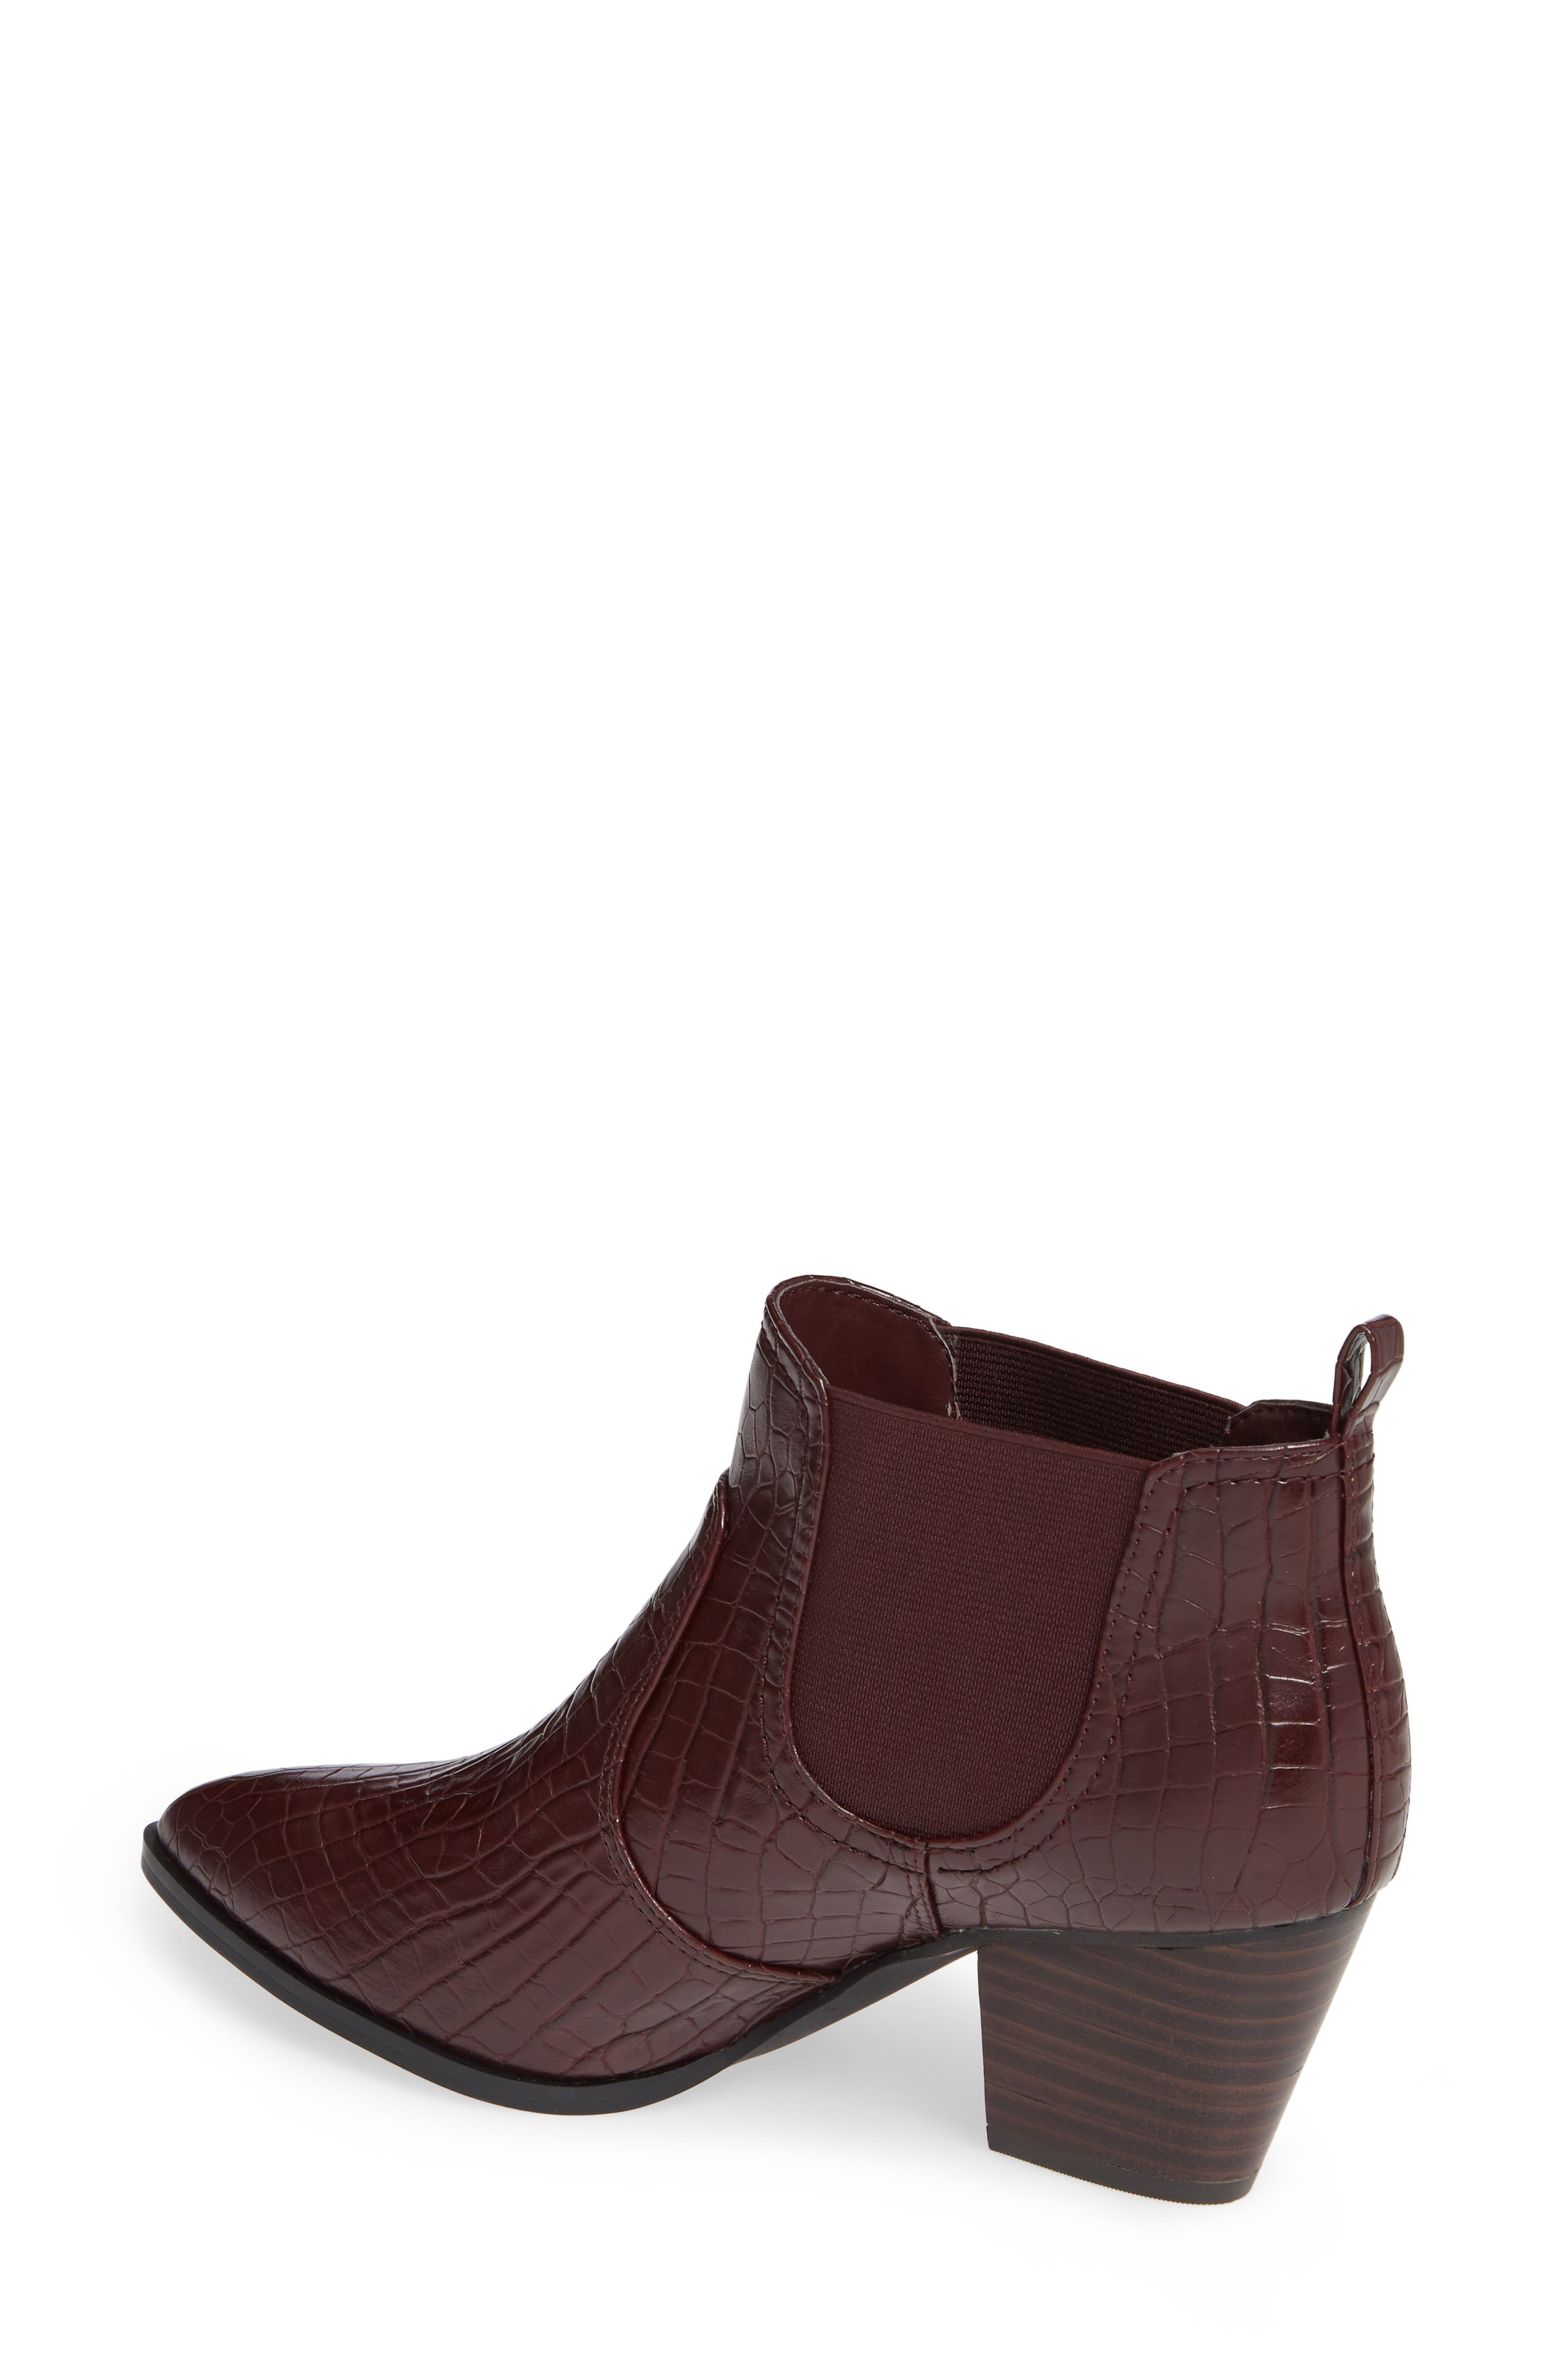 Emerson II Chelsea Bootie,                             Alternate thumbnail 2, color,                             BURGUNDY